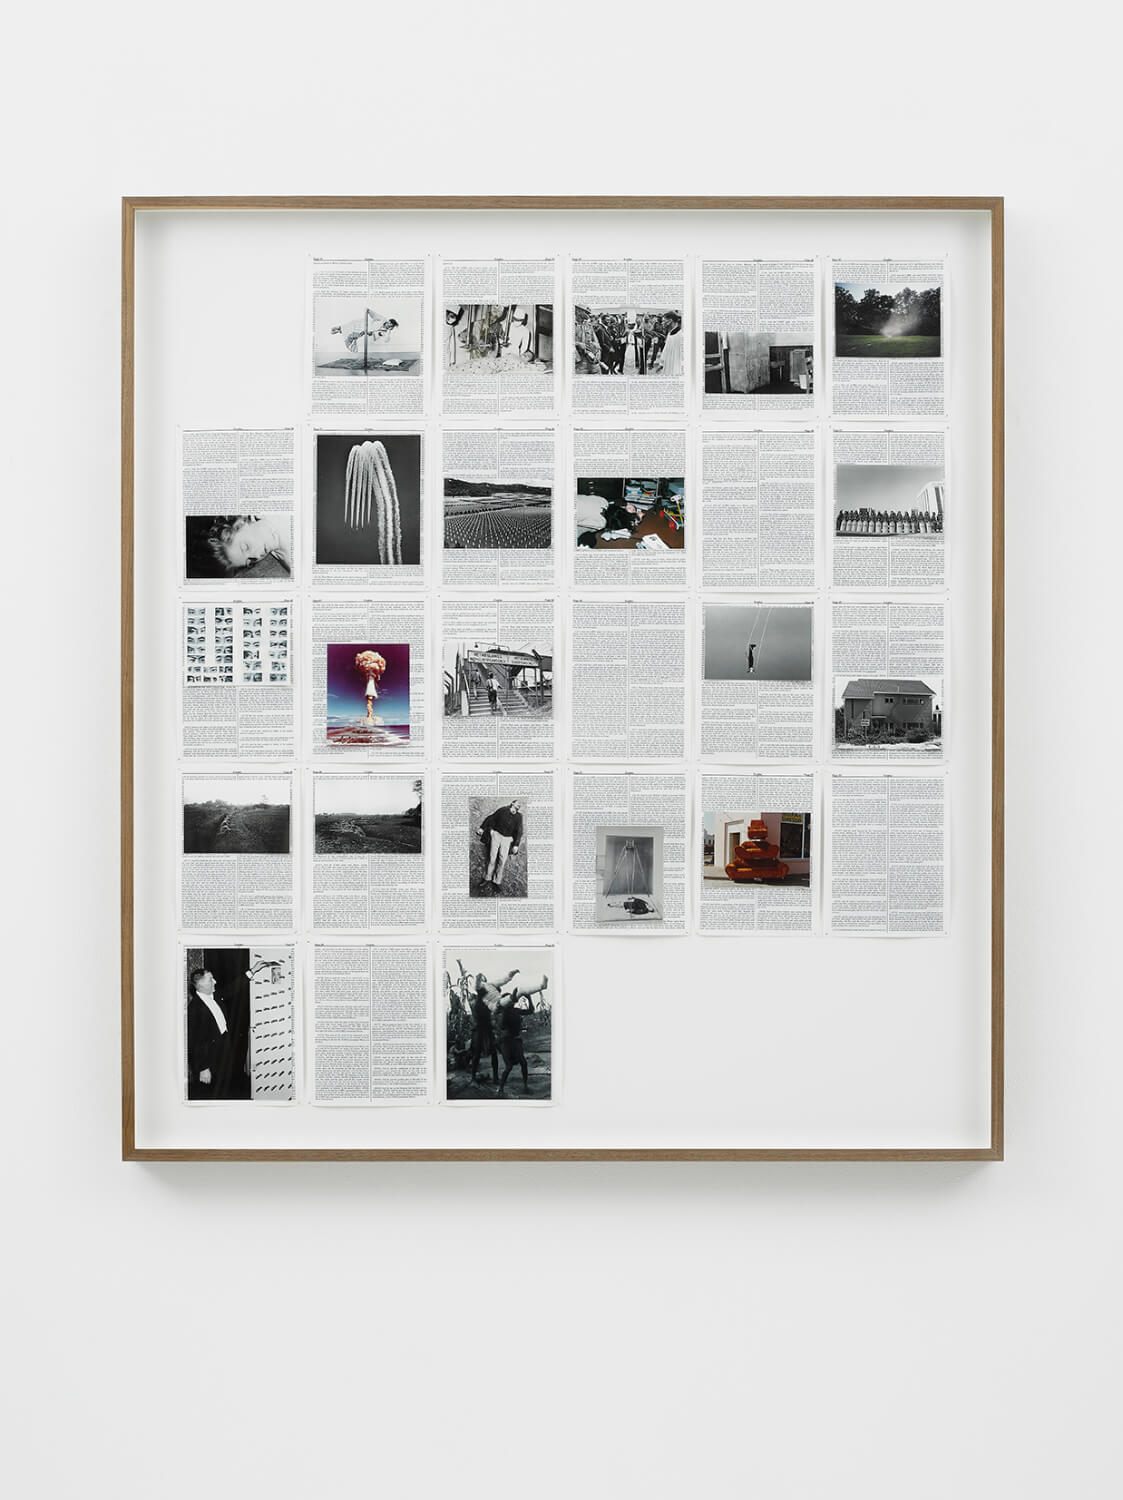 Exodus, Divine Violence, 2013, King James Bible, Hahnemühle print, brass pins, 1085mm x 1195mm, Image courtesy of Lisson Gallery, London